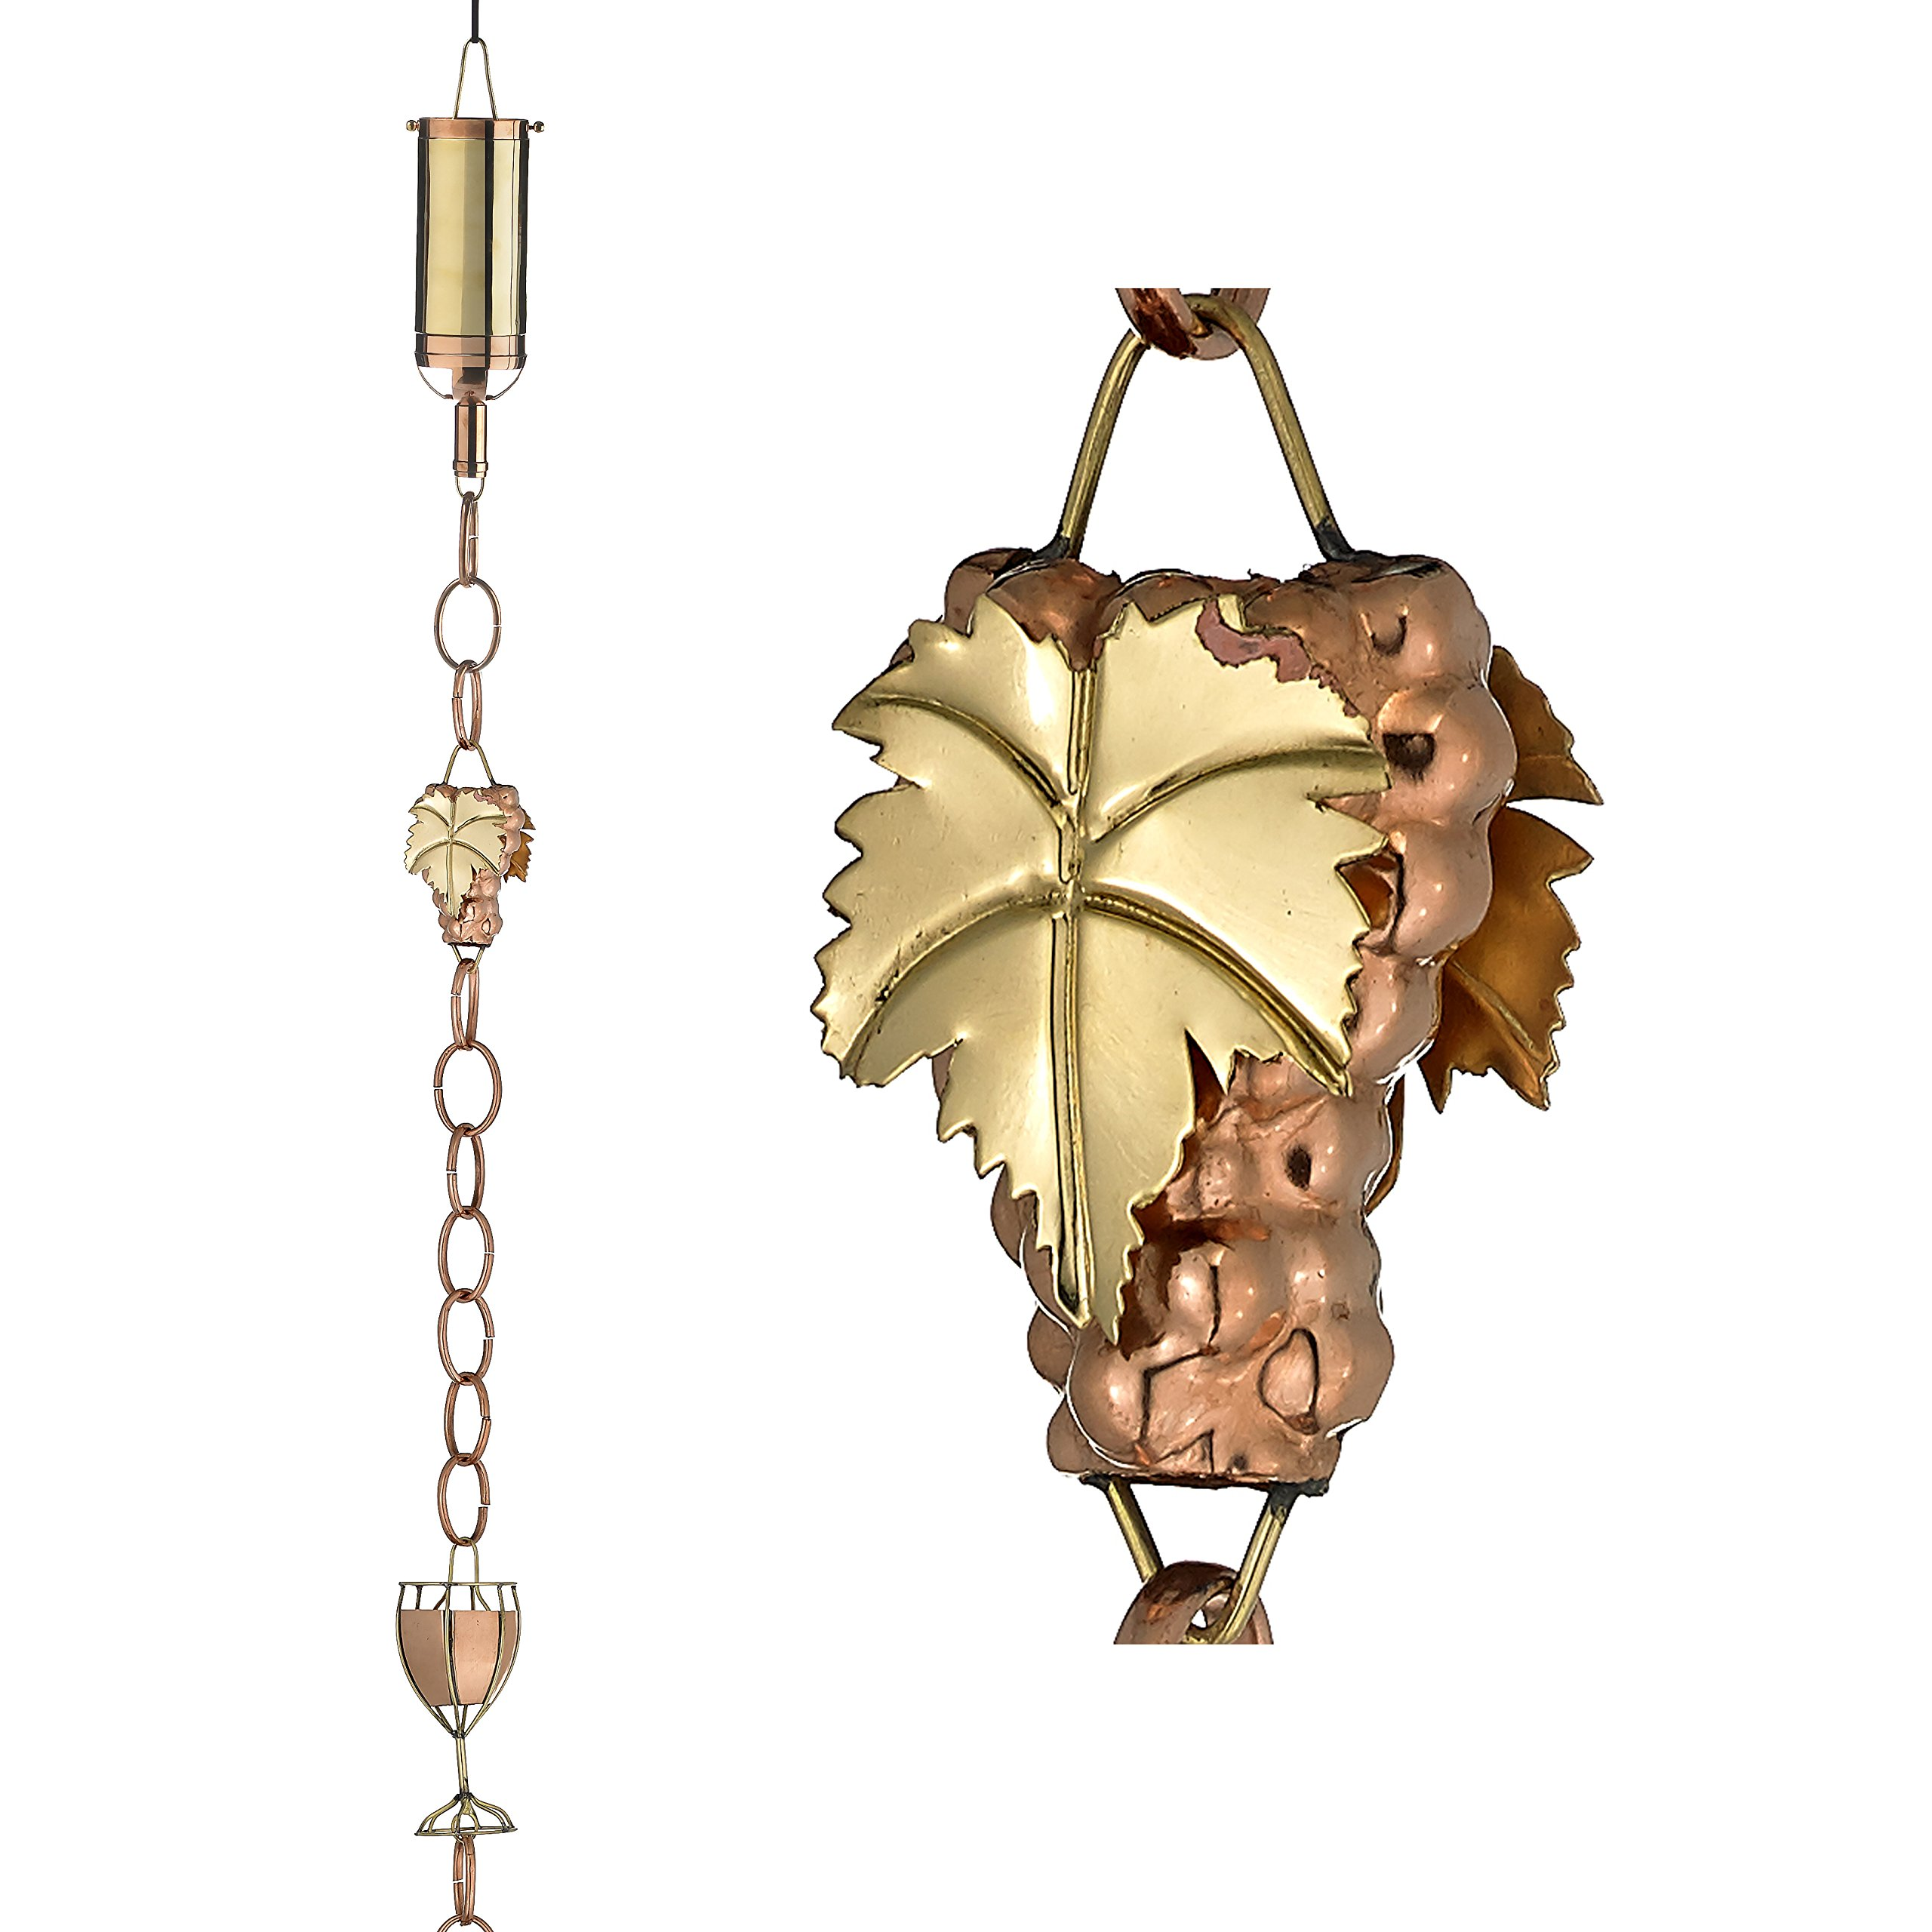 Good Directions Wine Bottle with Grapes & Glasses Pure Copper 8.5-Foot Rain Chain